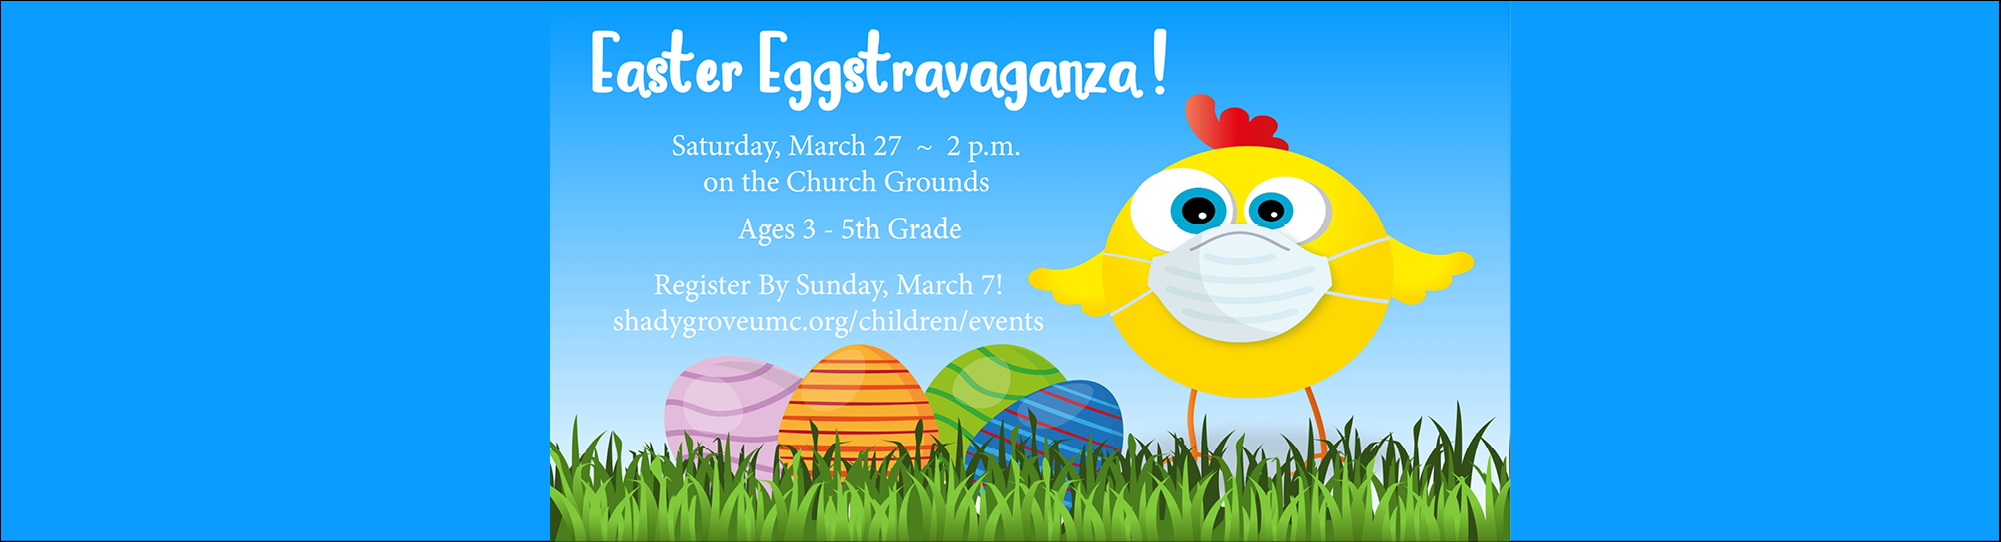 Easter Eggstravagnaza Saturday, March 27 2 p.m.